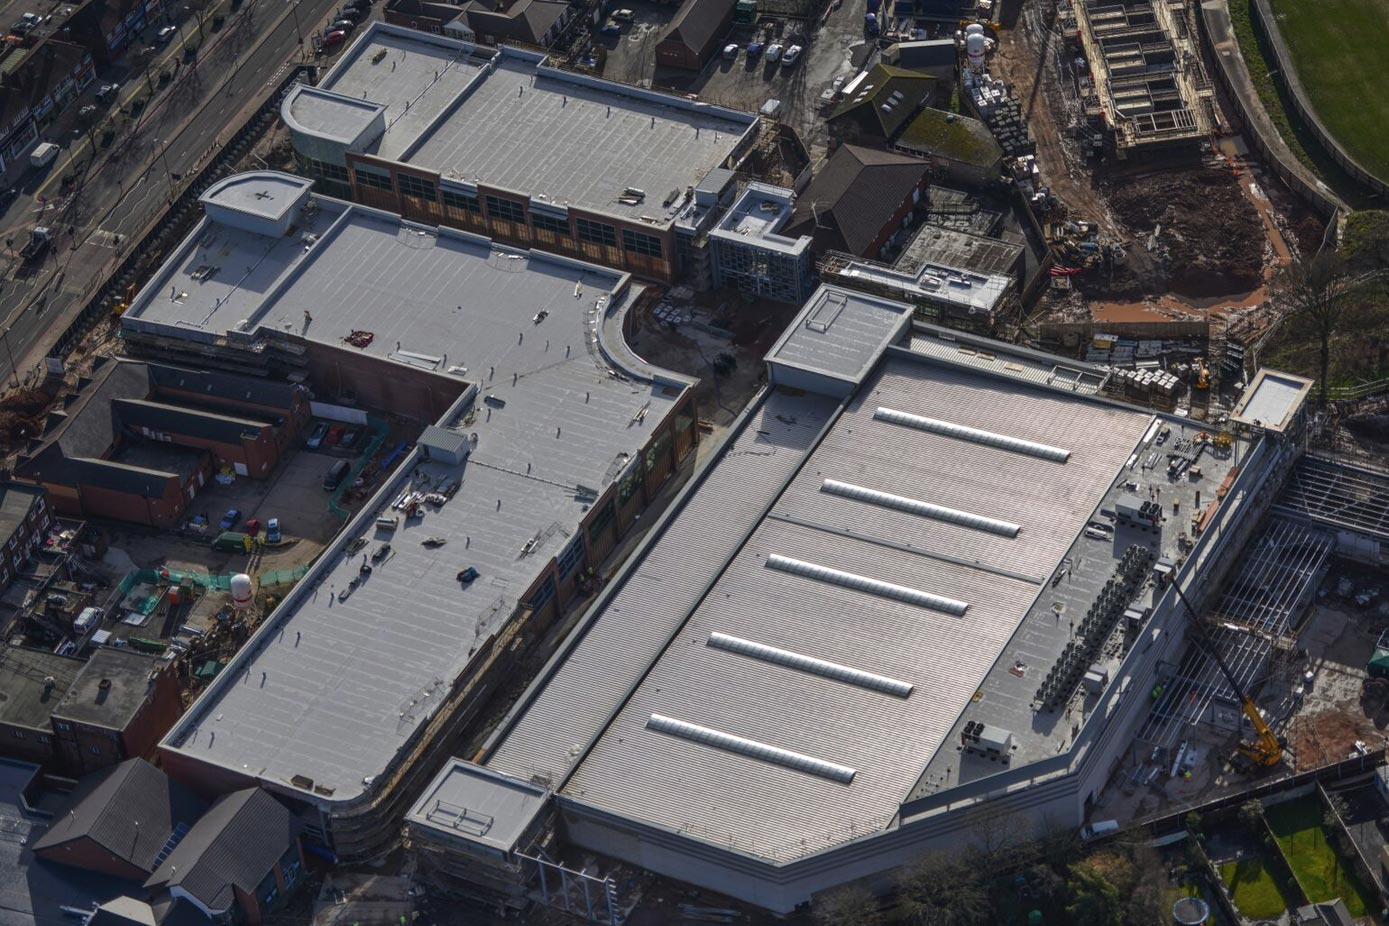 Birdseye view of a large commercial roof